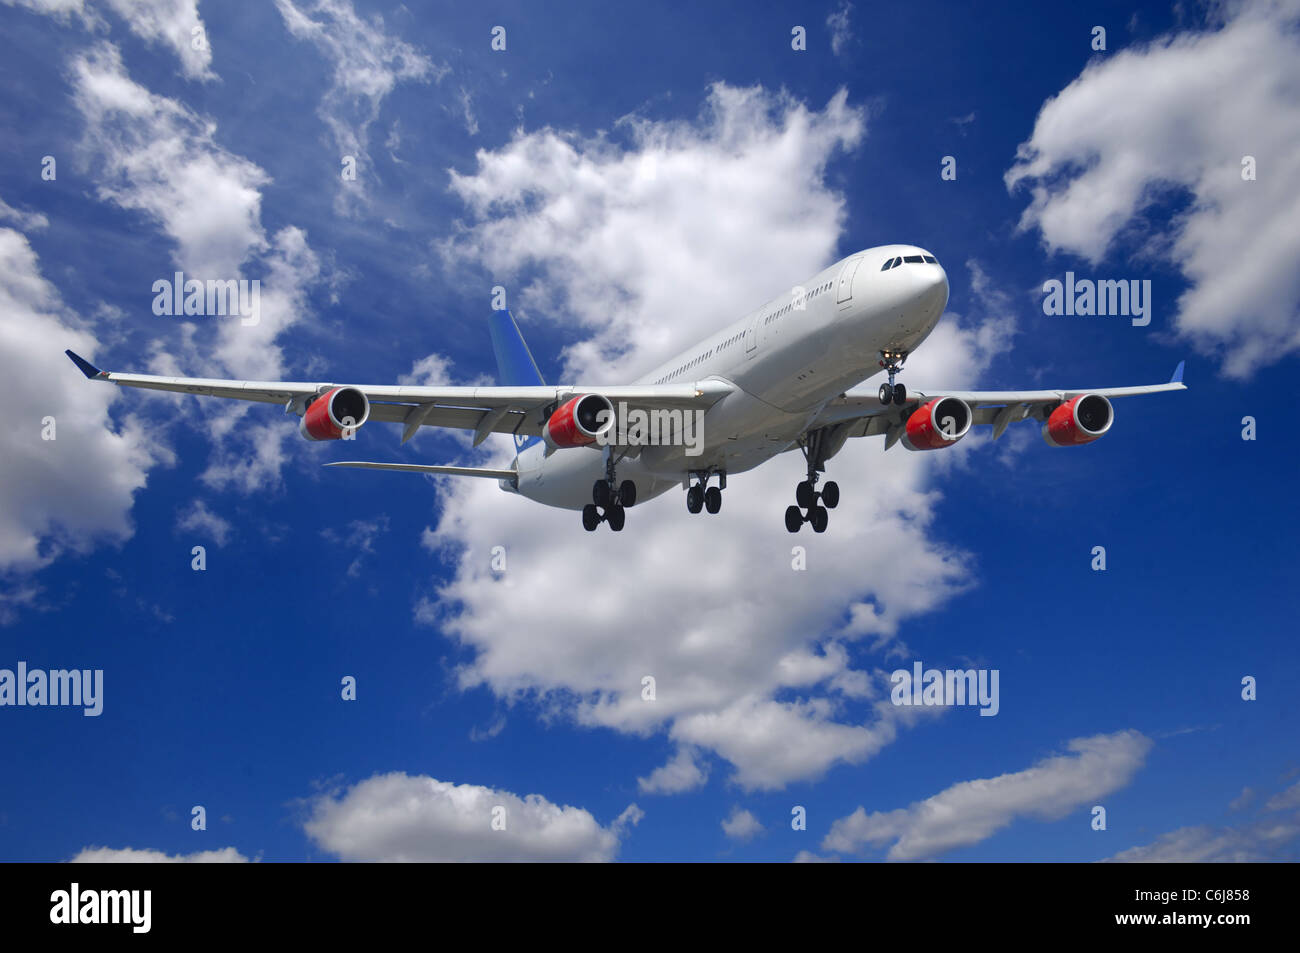 Plane going to land. Blue and cloudy sky. - Stock Image